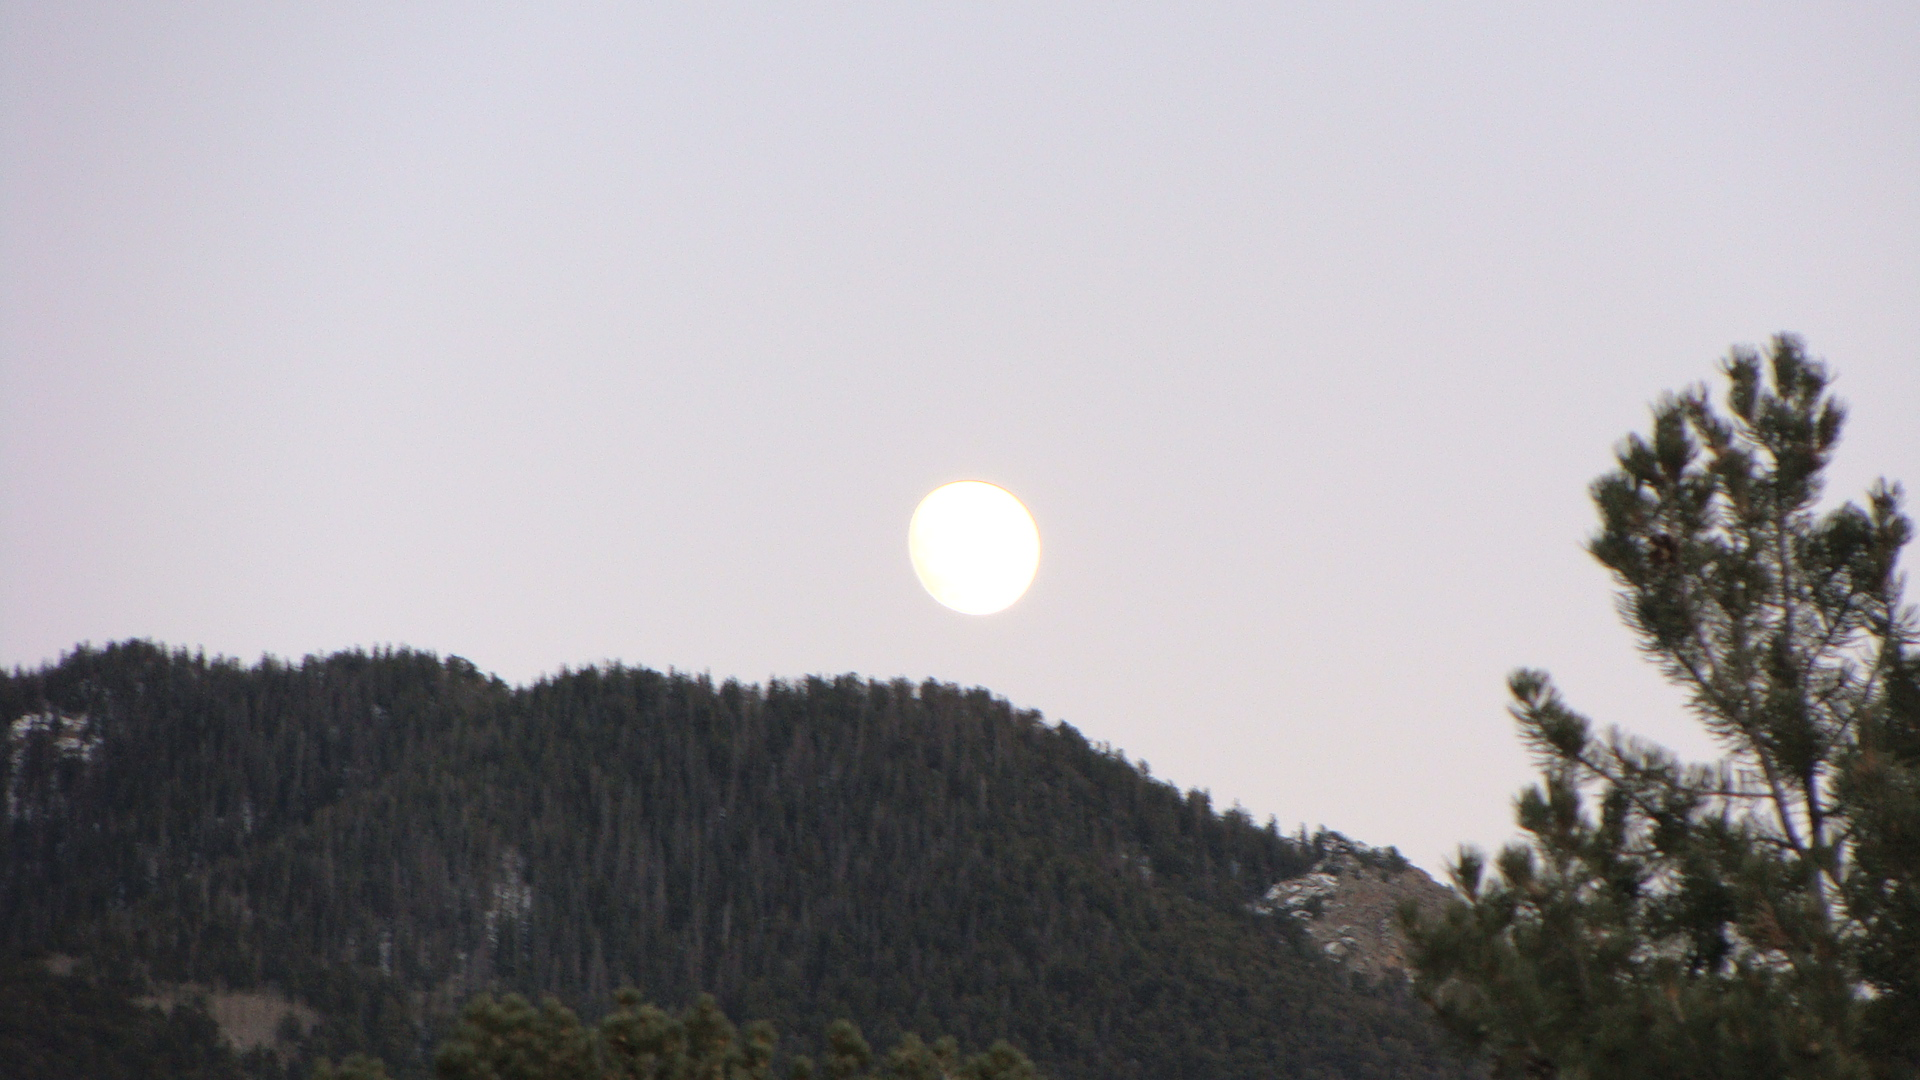 Moon rise at sunset.